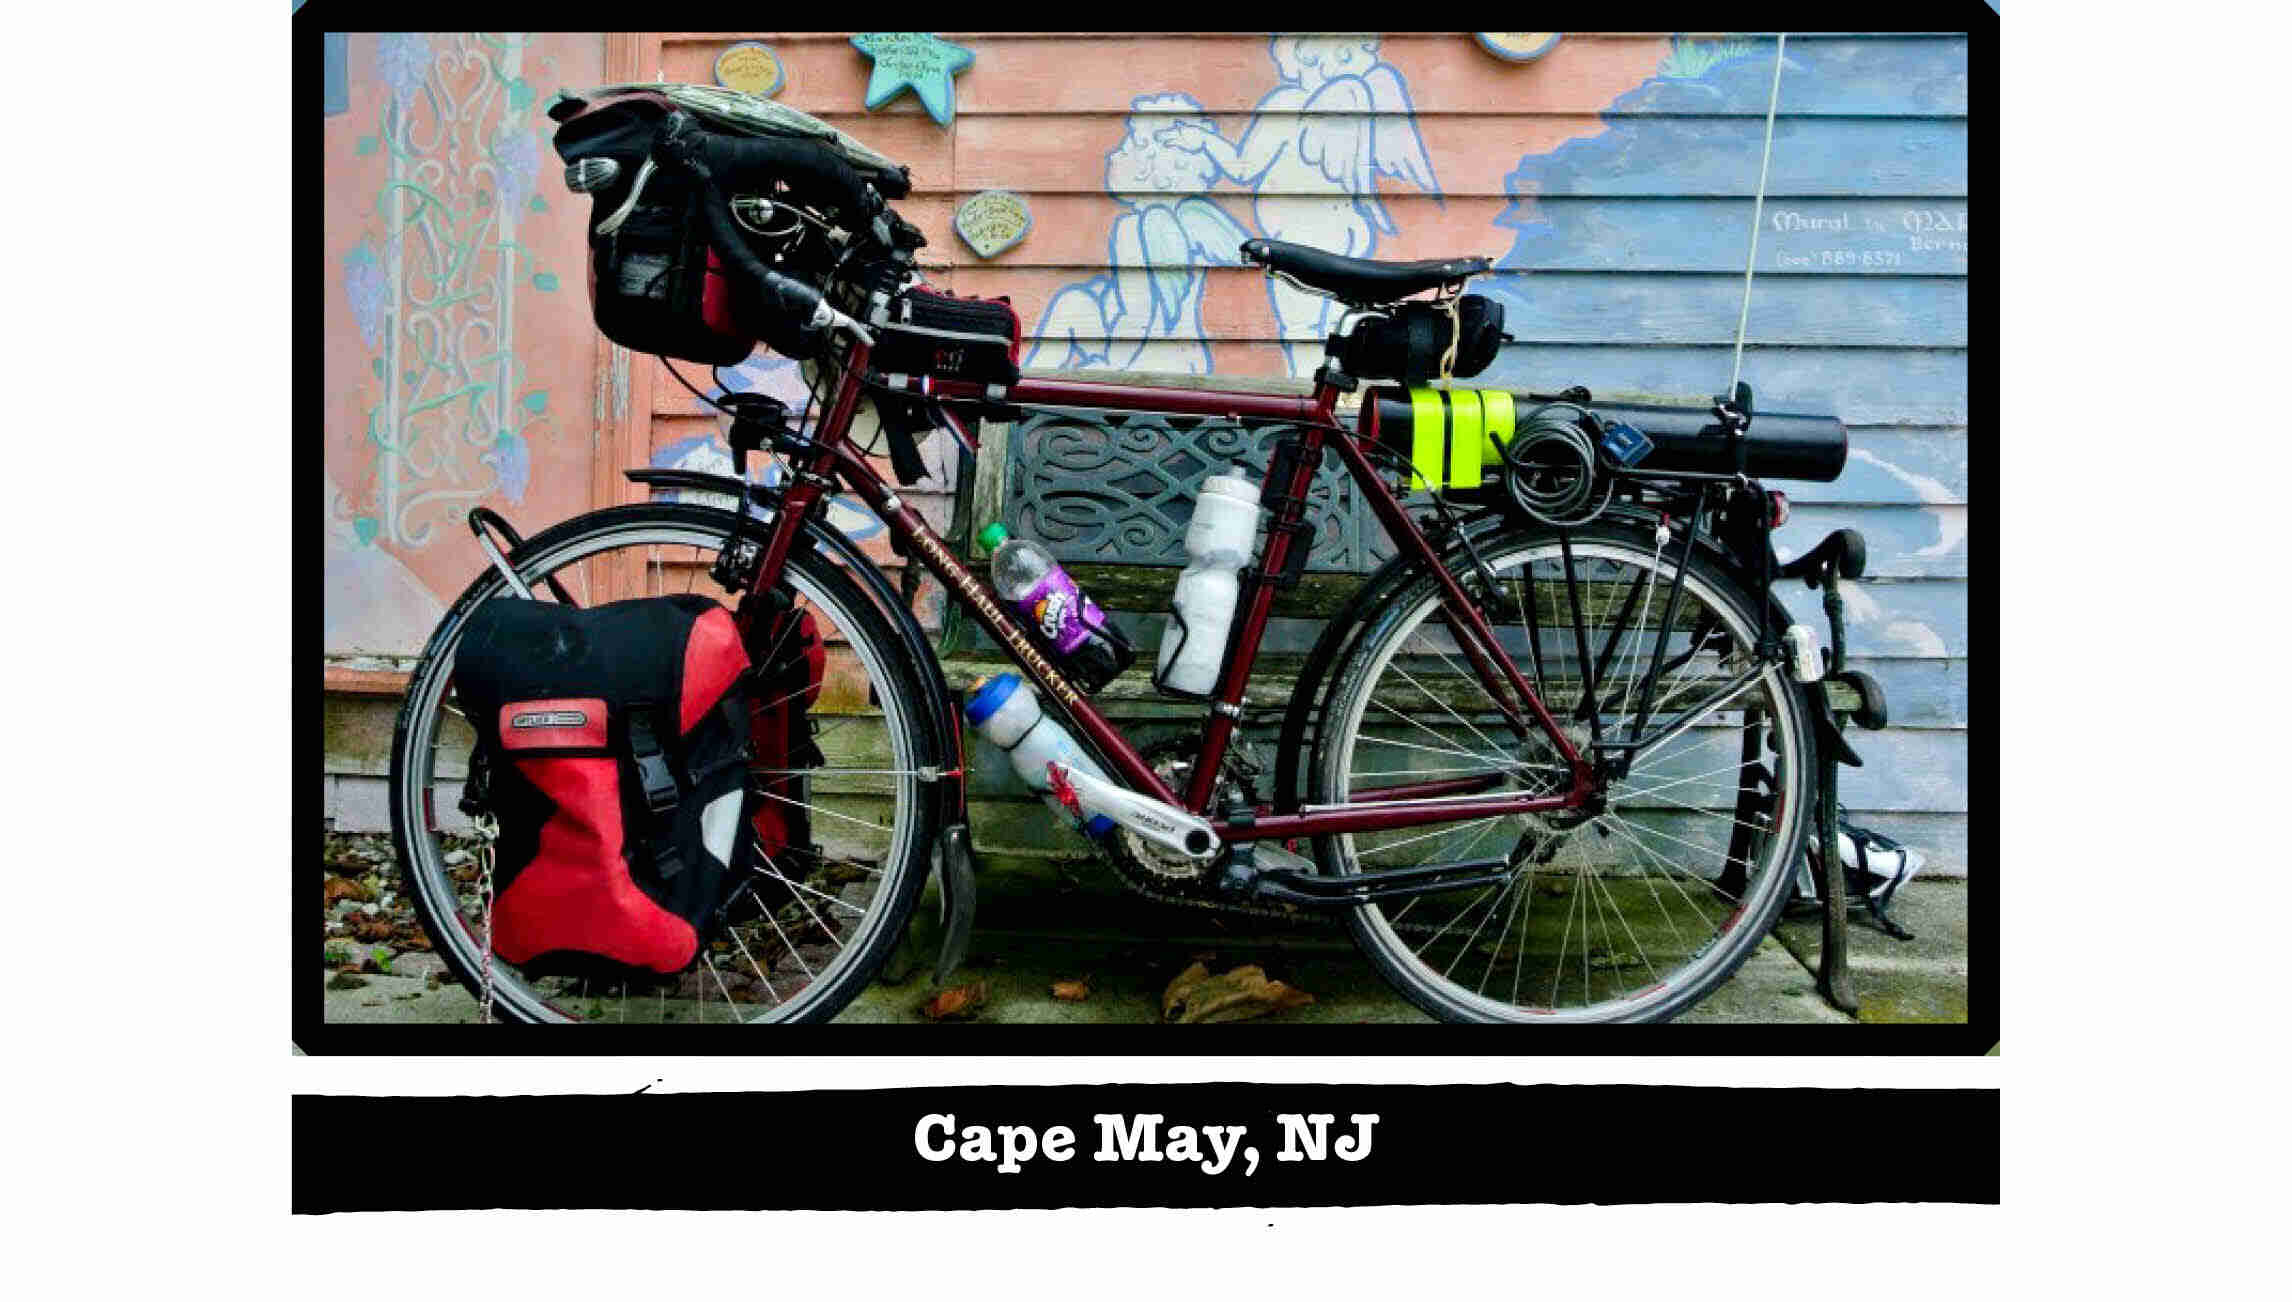 Left side view of a Surly Trucker bike, loaded with gear, in front of a wall with a mural - Cape May, NJ tag below image